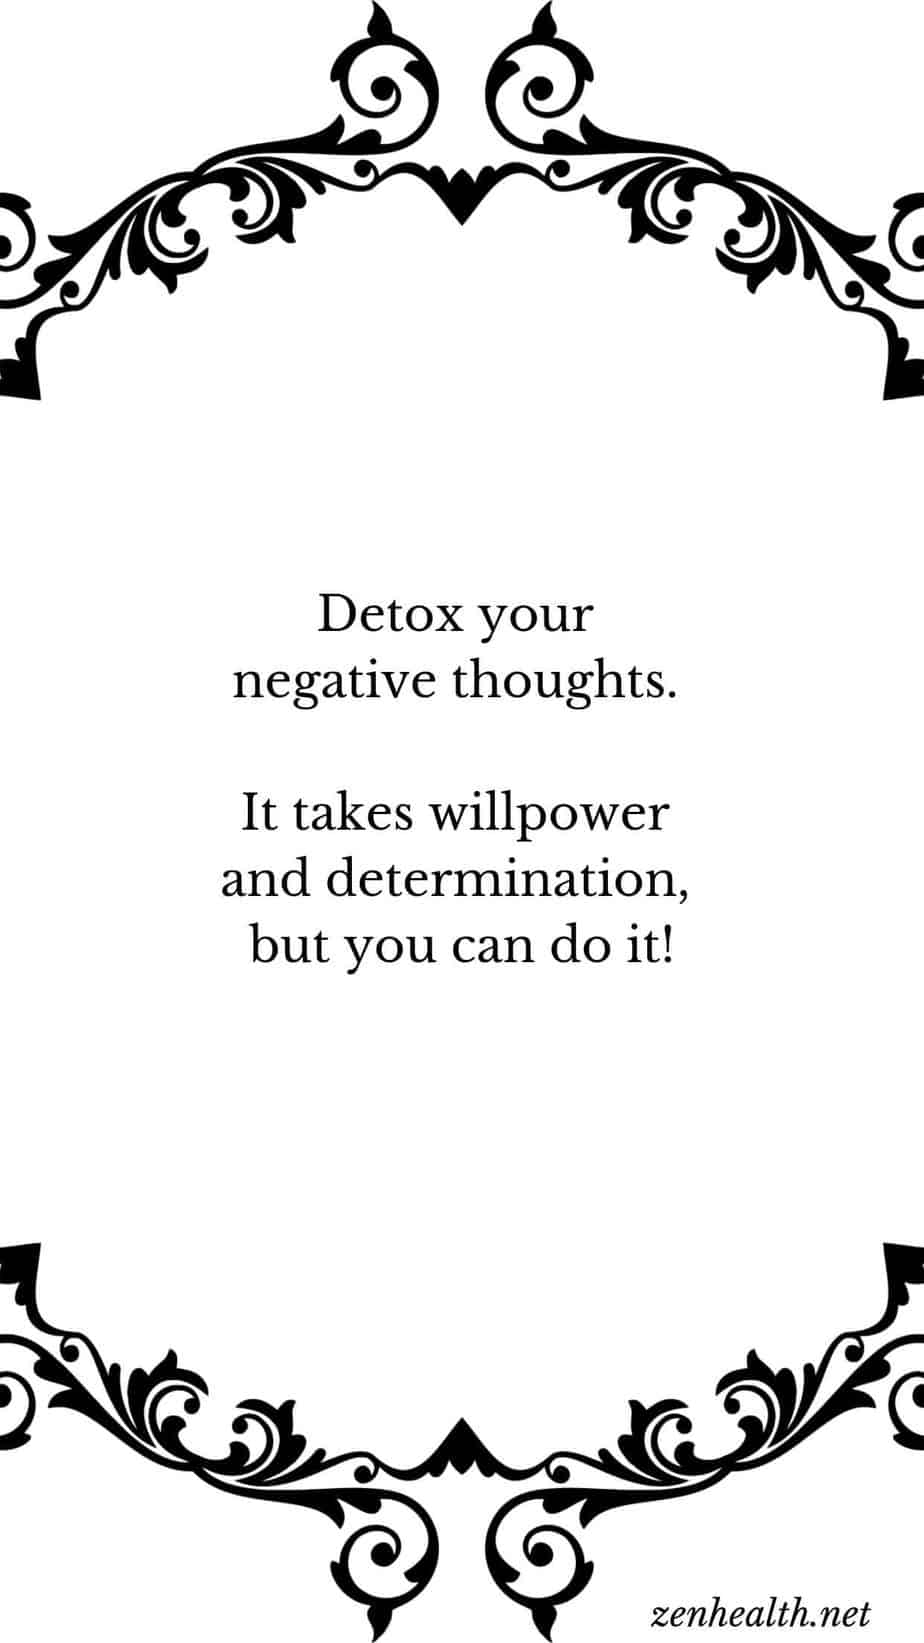 Detox your negative thoughts. It takes willpower and determination, but you can do it!